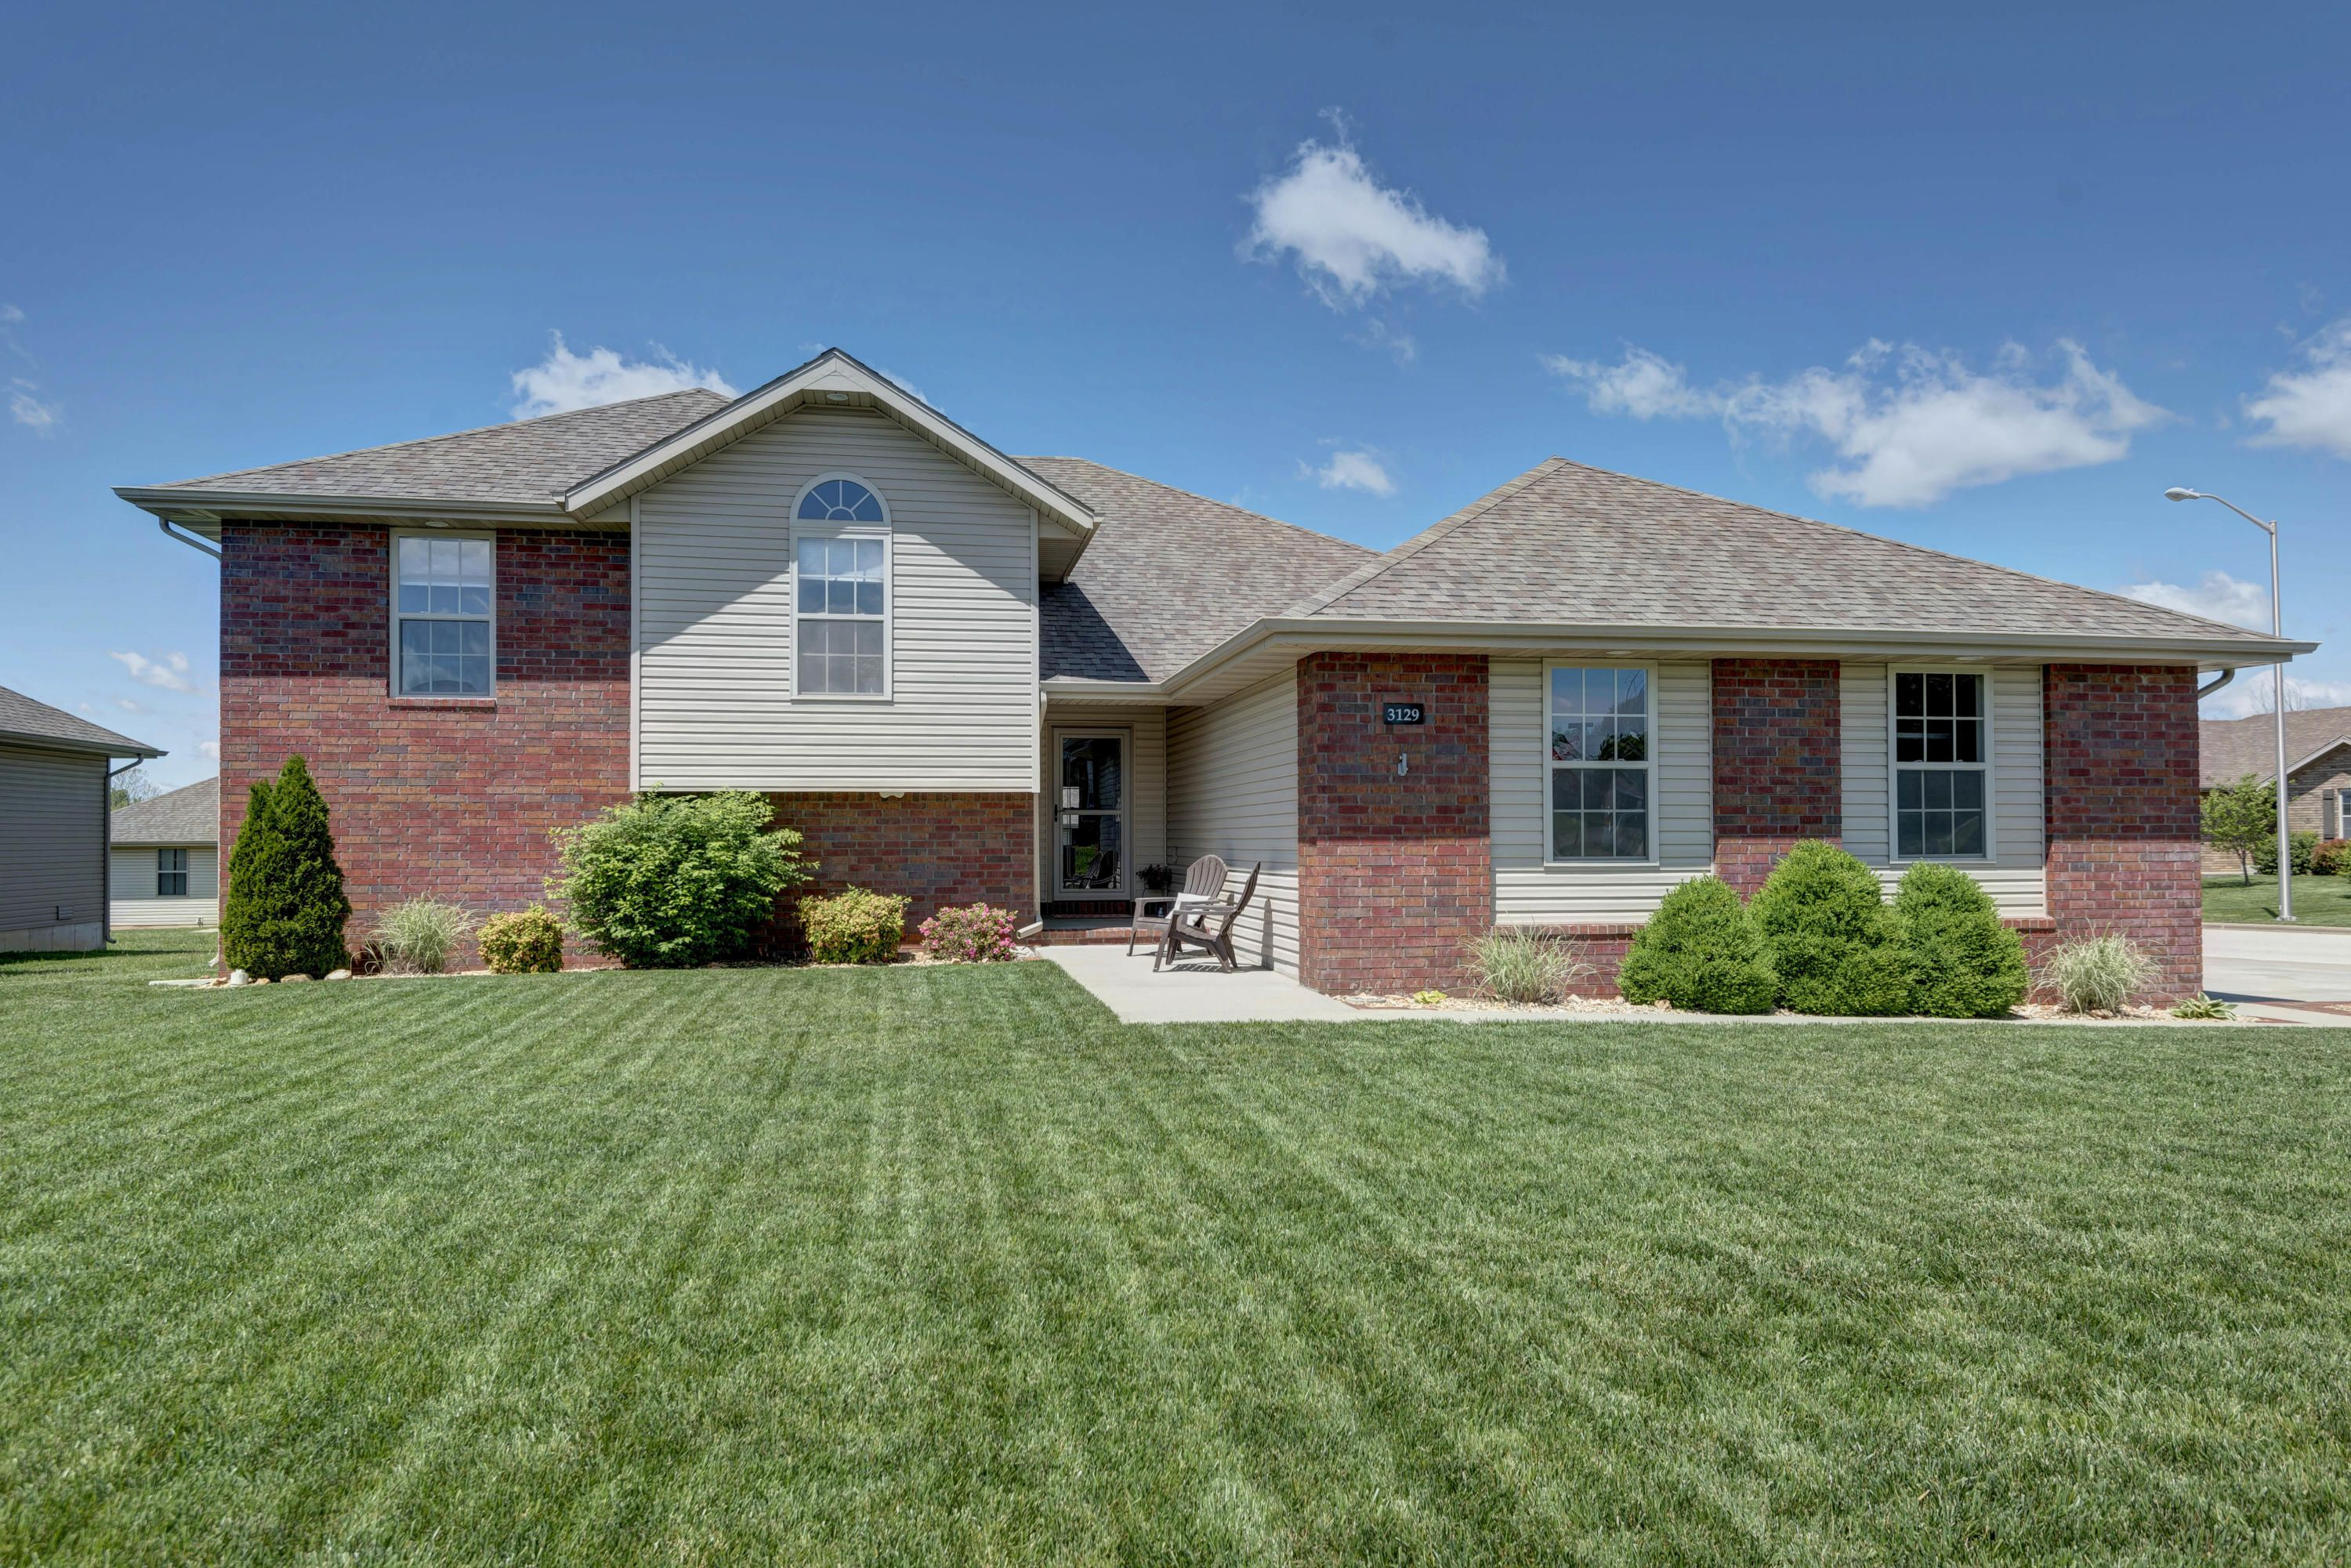 Just listed 4 beds 4 baths 2569 sq ft 3129 north wabash